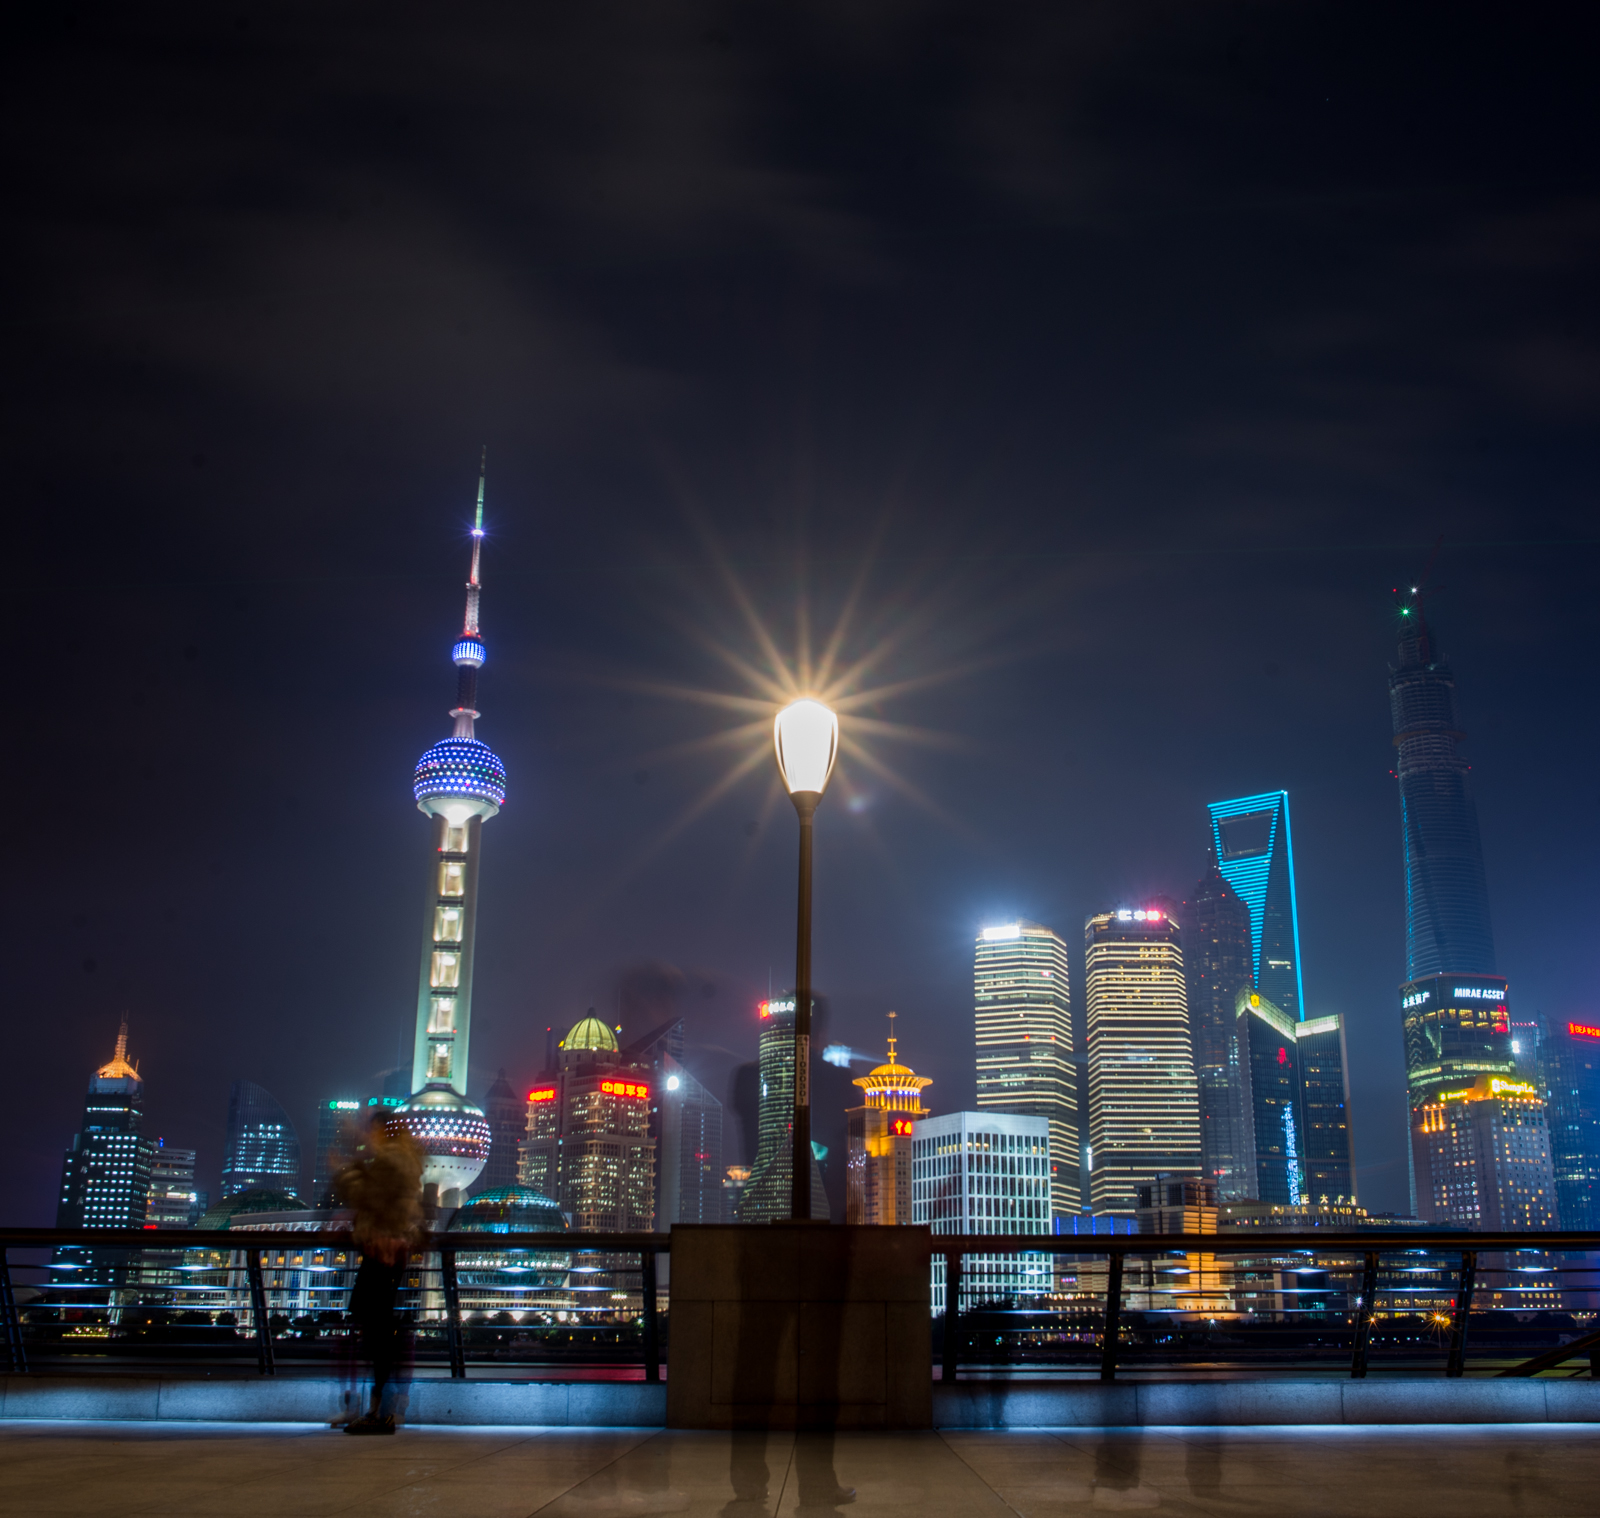 The Bund in Shanghai stretches a couple of miles along the Huangpu River, offering great views of Pudong on the other side